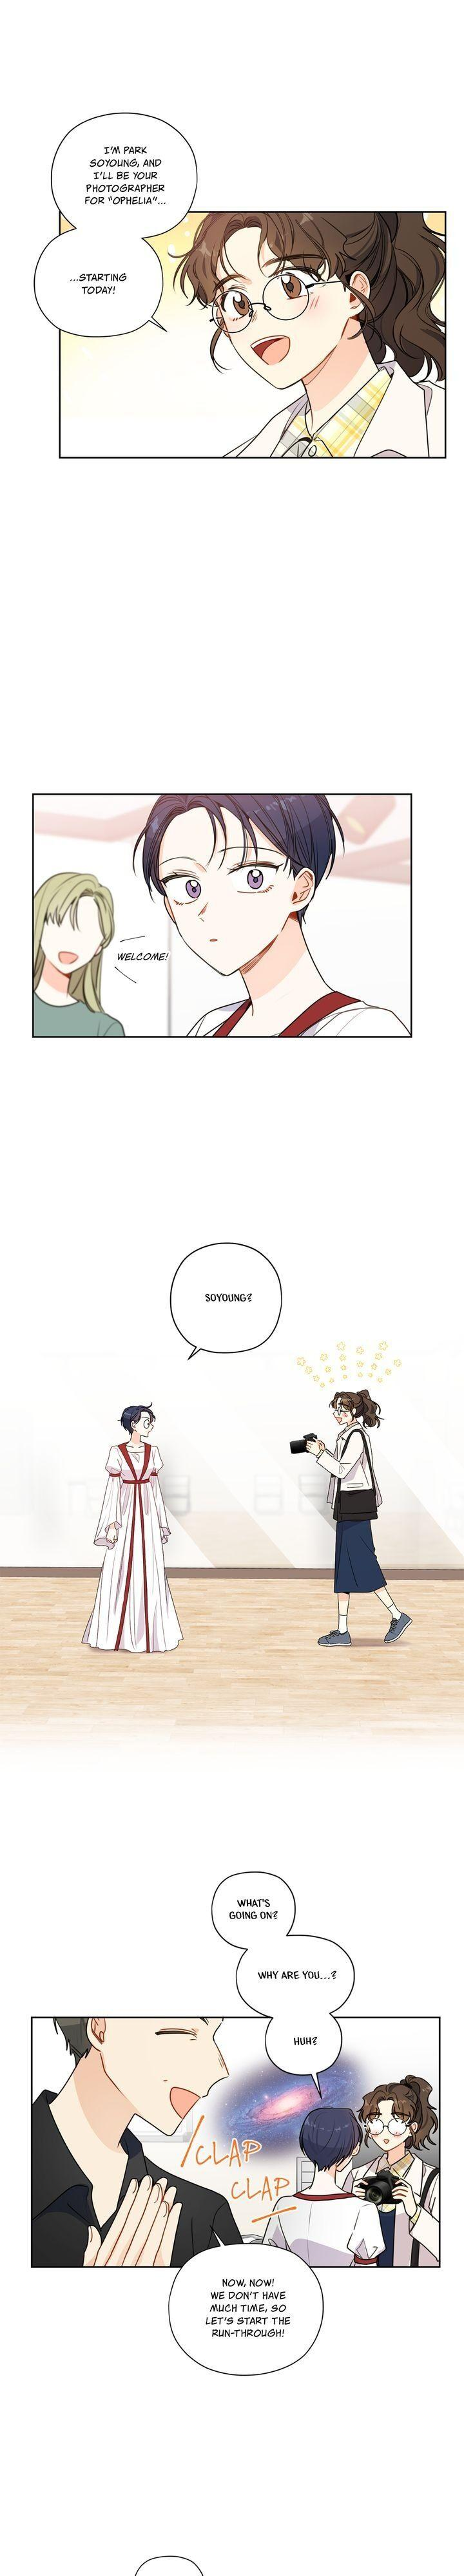 After The Curtain Call - chapter 49 - #1